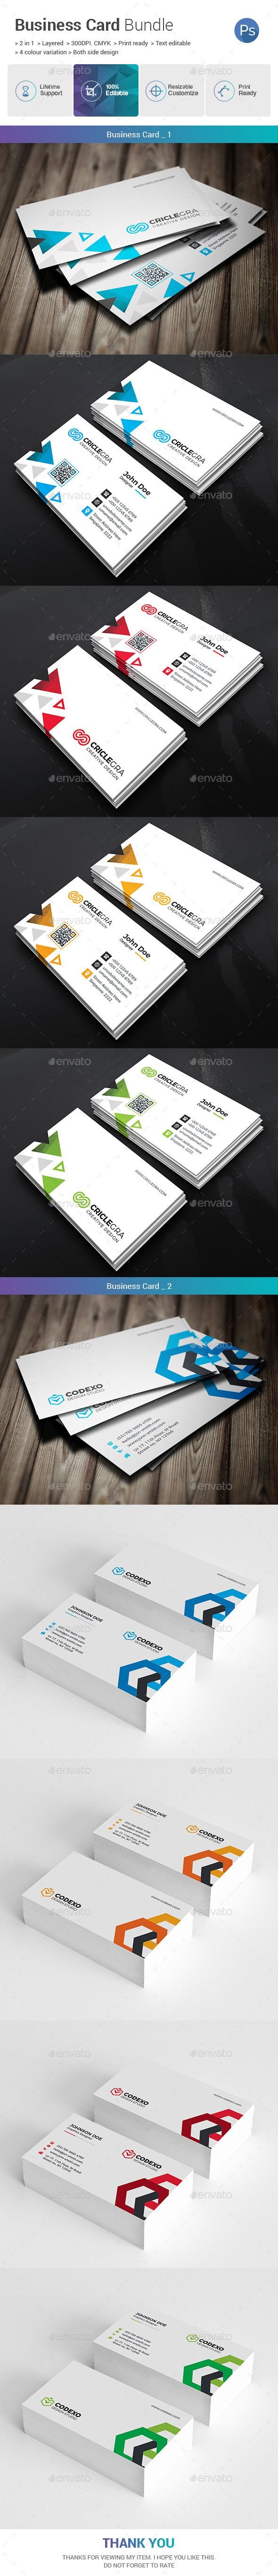 Business card bundle 2 in 1 business cards print templates and business card bundle 2 in 1 reheart Choice Image